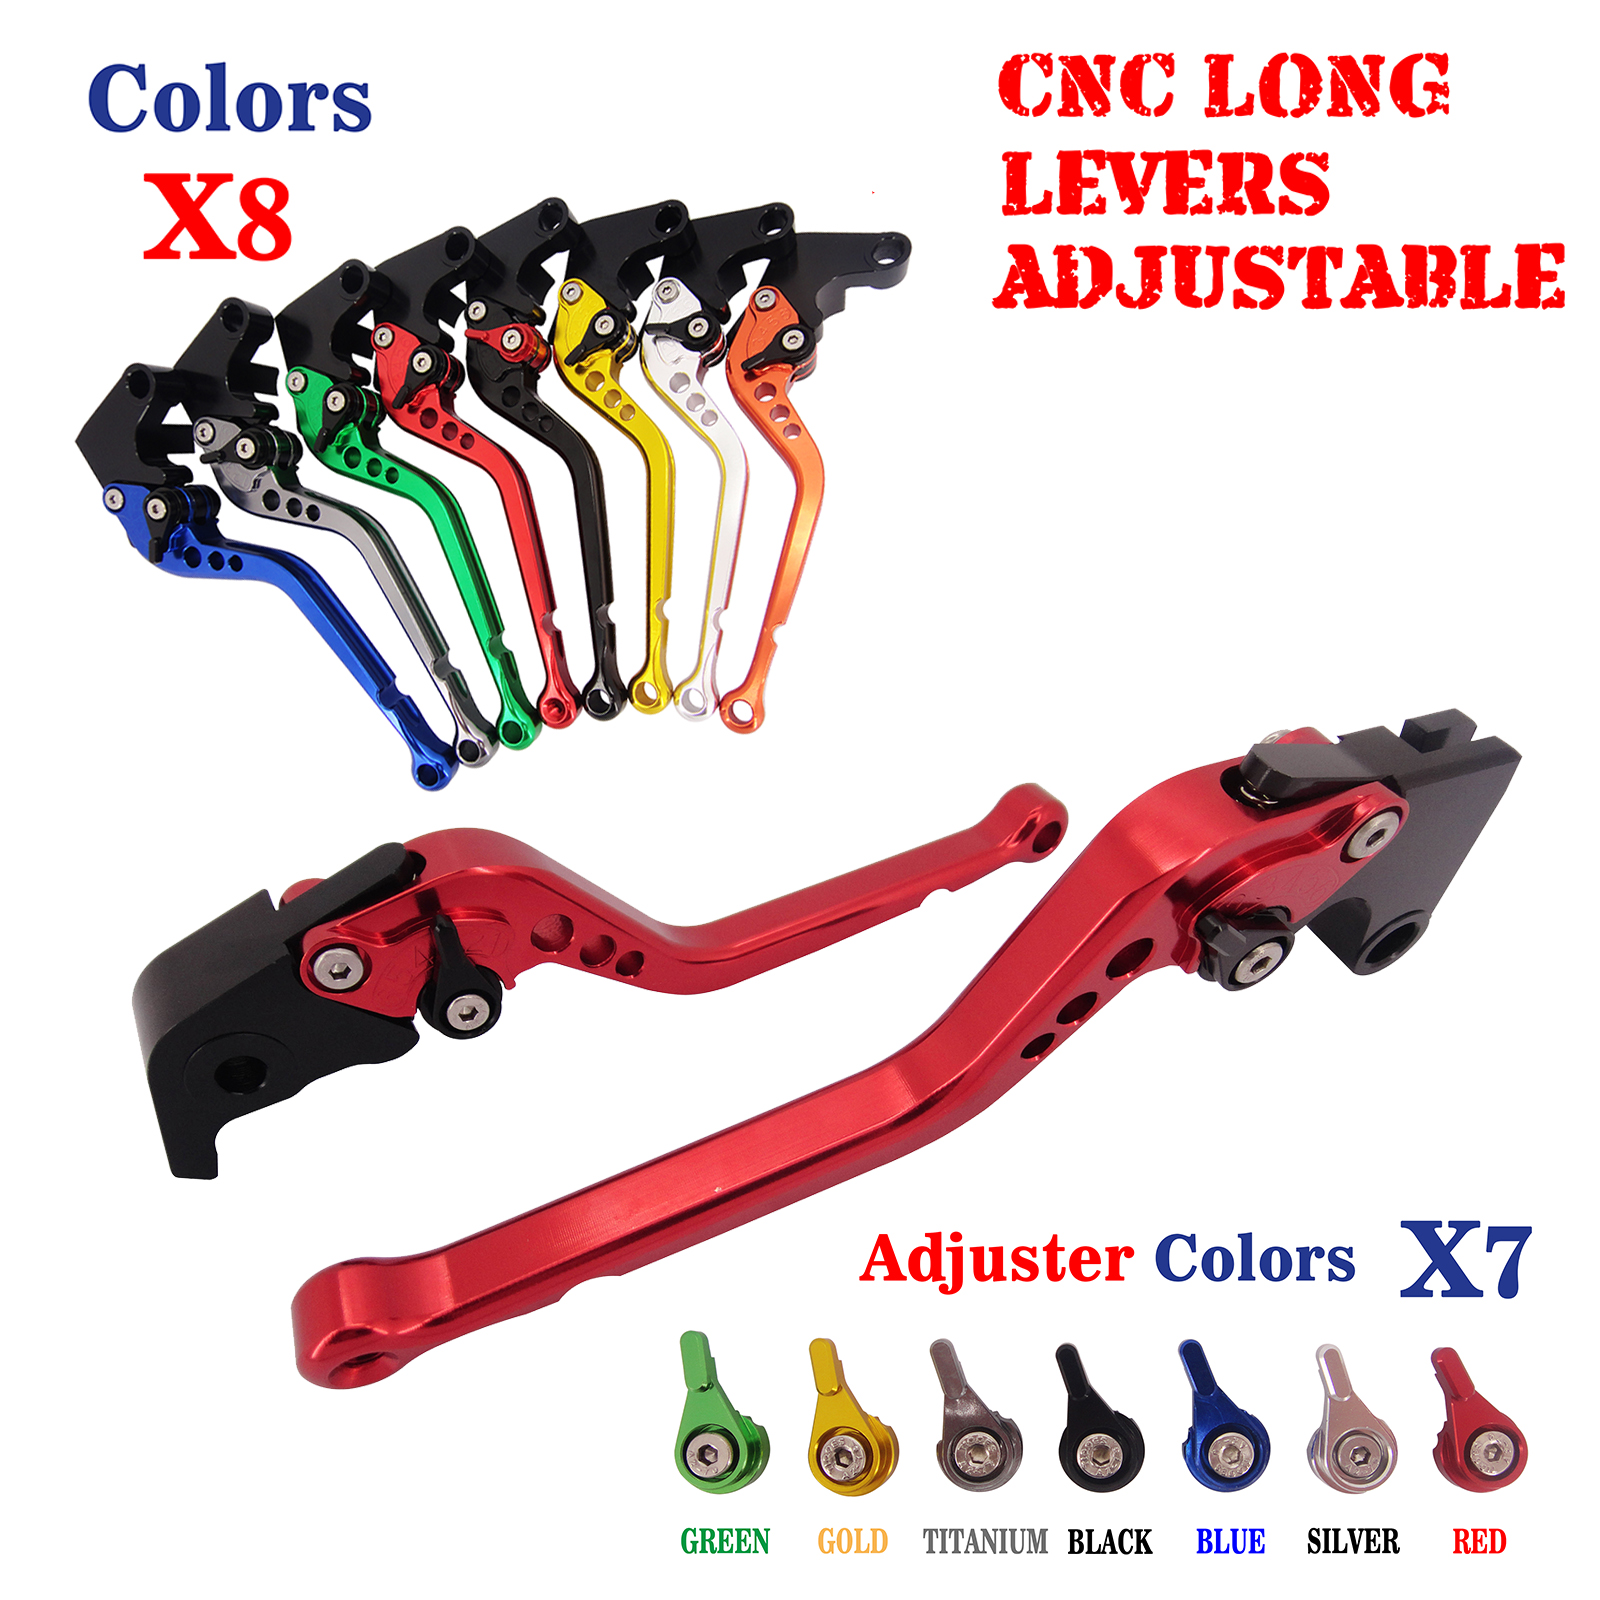 CNC Long Adjustable Brake Clutch Levers For Honda CB599/CB600 Hornet  CBR900RR NC700 NC750 S/X CBR600 F2 F3 F4 F4i 1991-07<br><br>Aliexpress